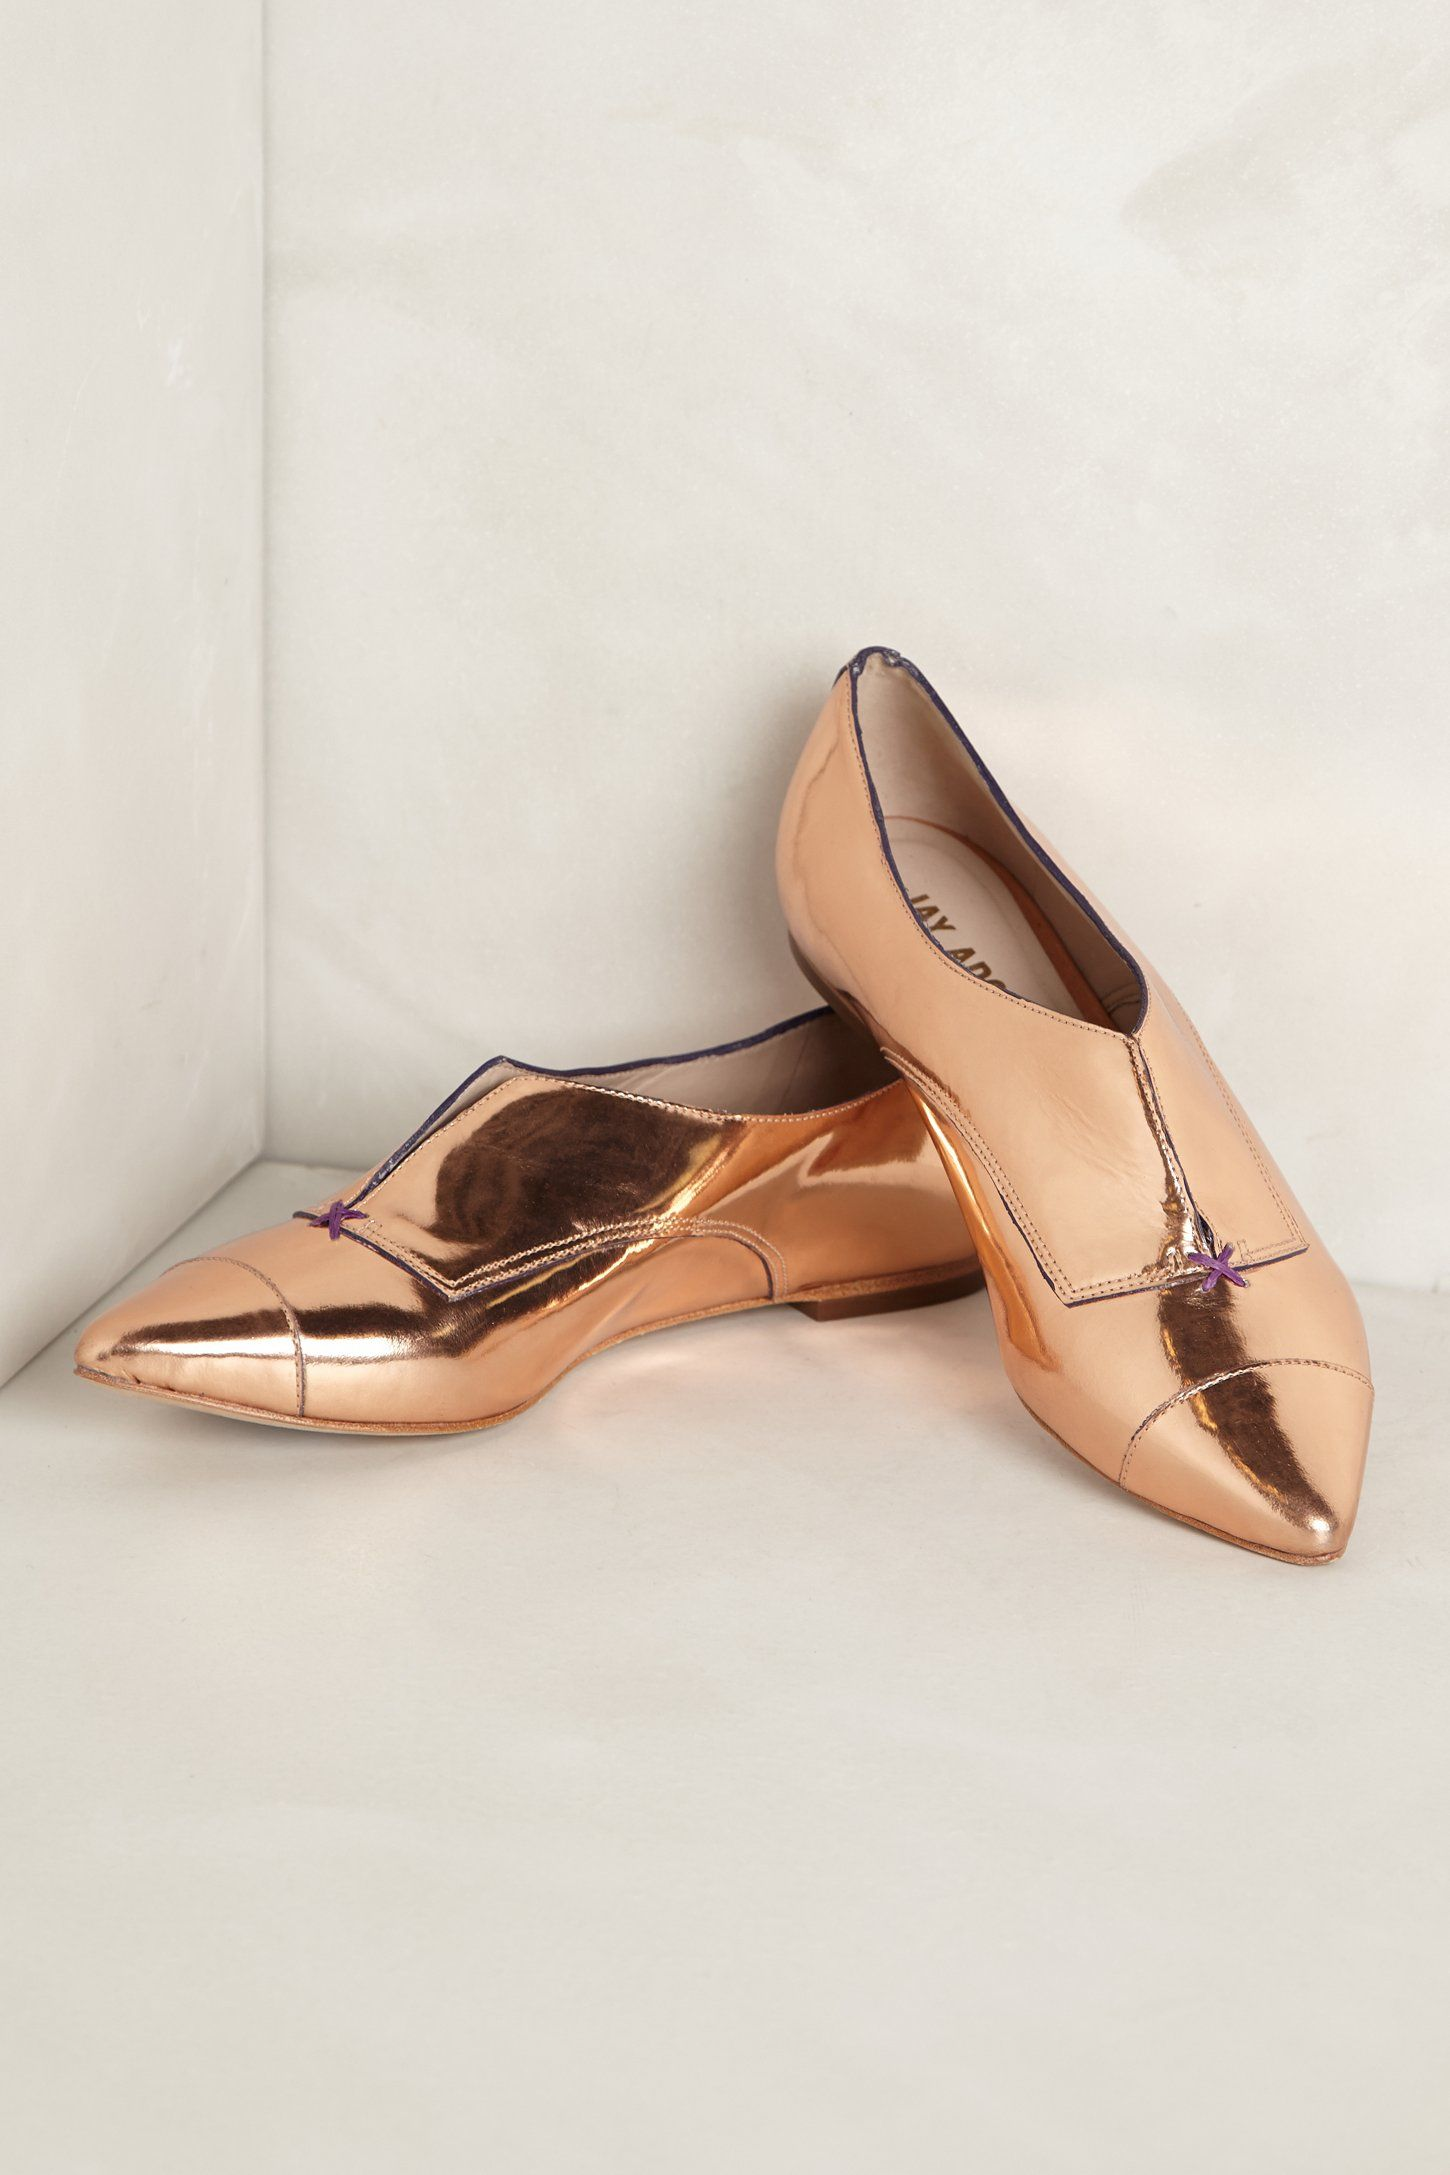 6f9215fa0db Red Carpet Oxfords in Rose Gold | Sapatos | Pinterest | Zapatos ...